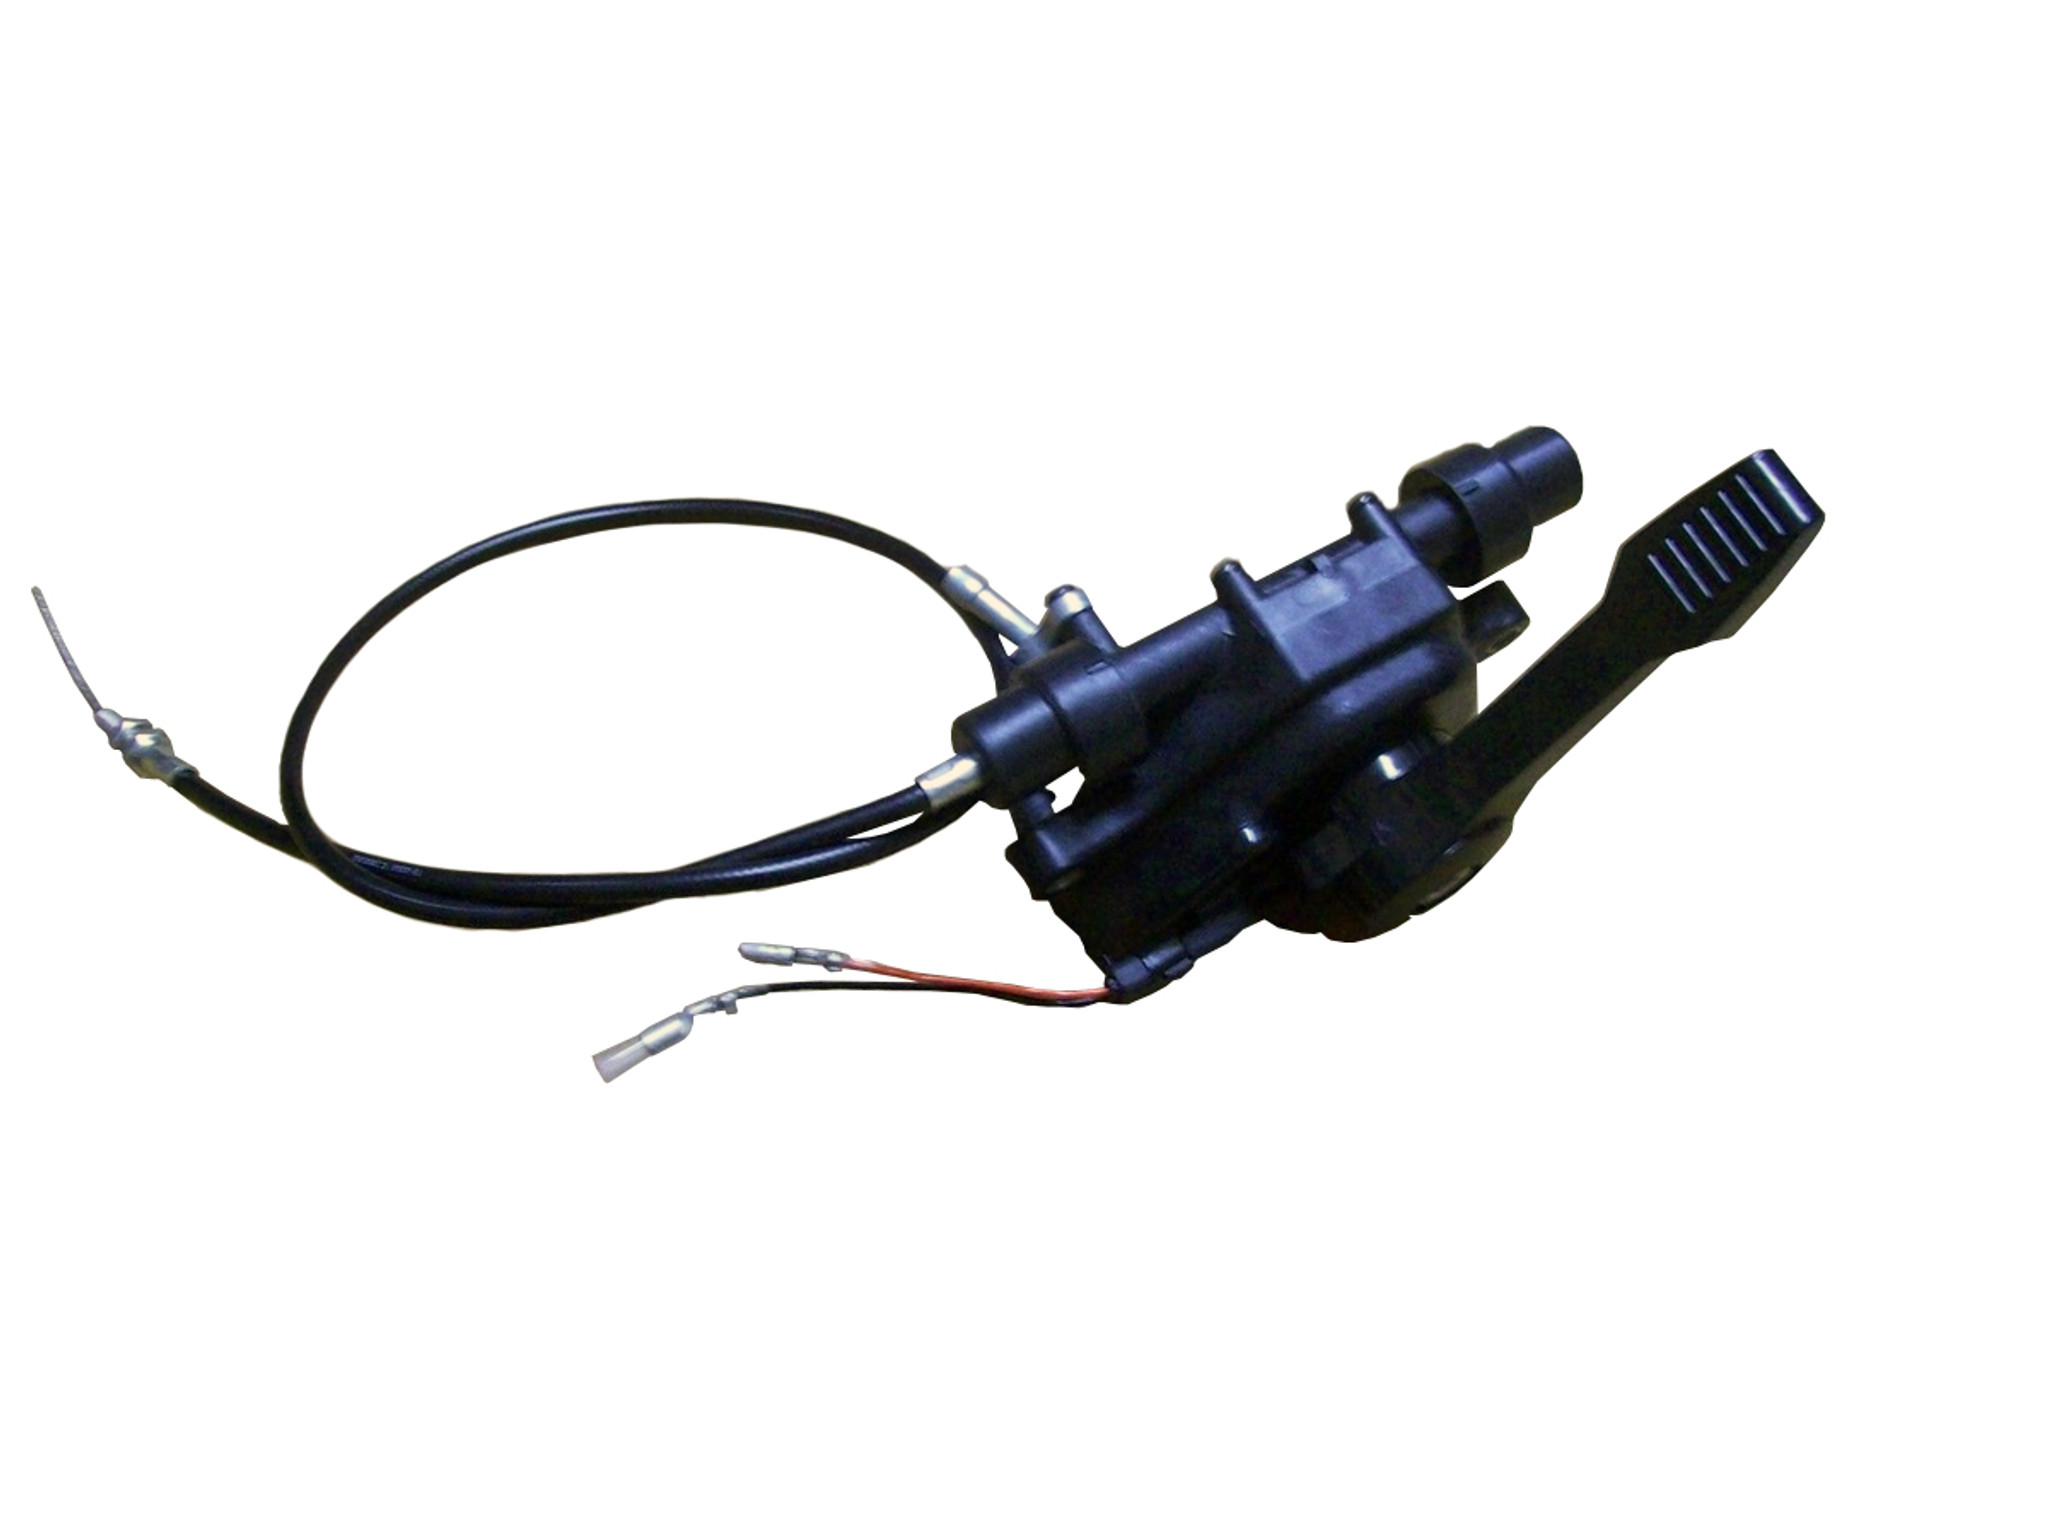 small resolution of throttle assembly 94295 1498596131 jpg c 2